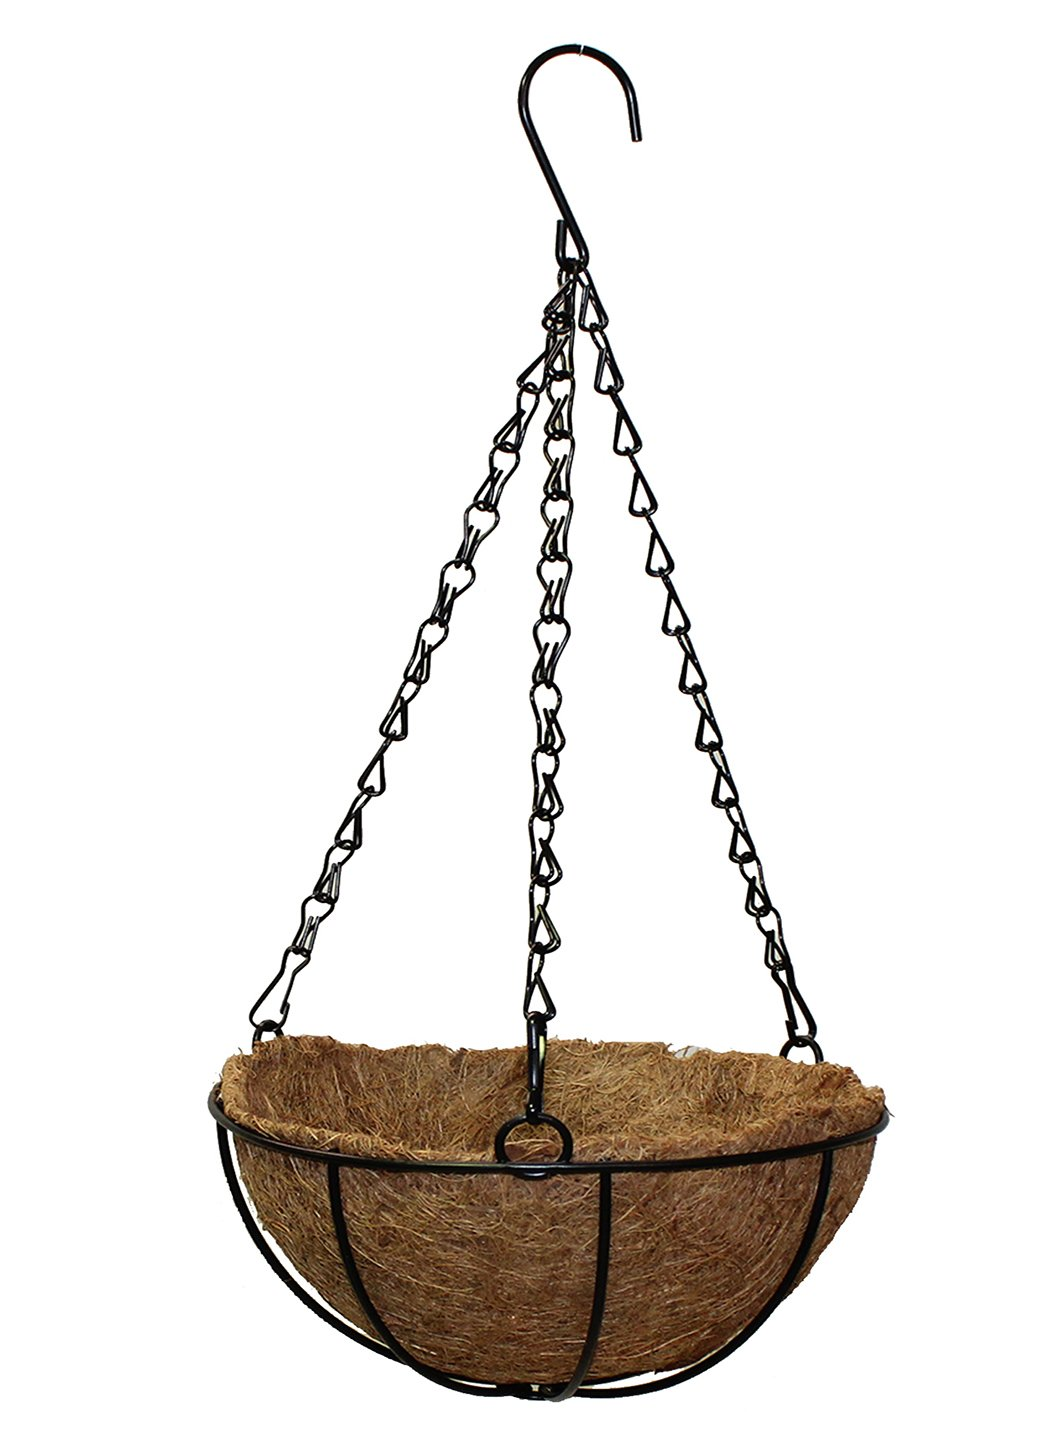 Polliantion Cane Planter with Hanging Metal Chain  Plant Plantar Hanging For Balcony (Large, Pack of 1) - Artificial Flowers & Plants - PolliNation